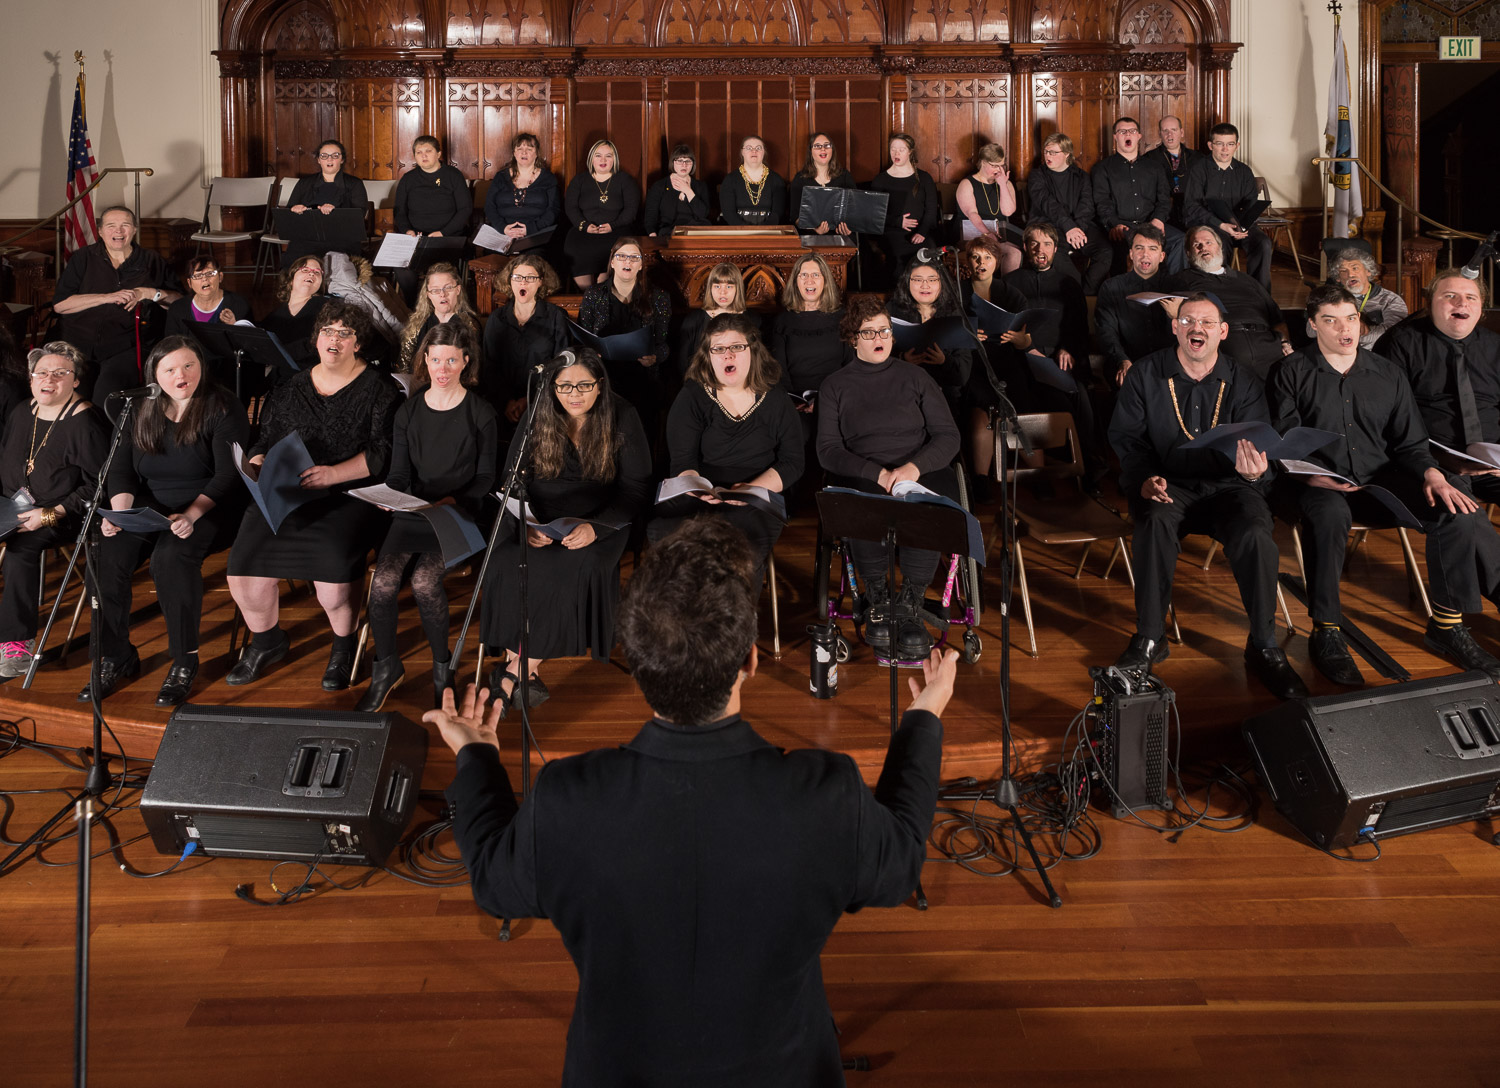 Man with his back turned to the camera directs a choir